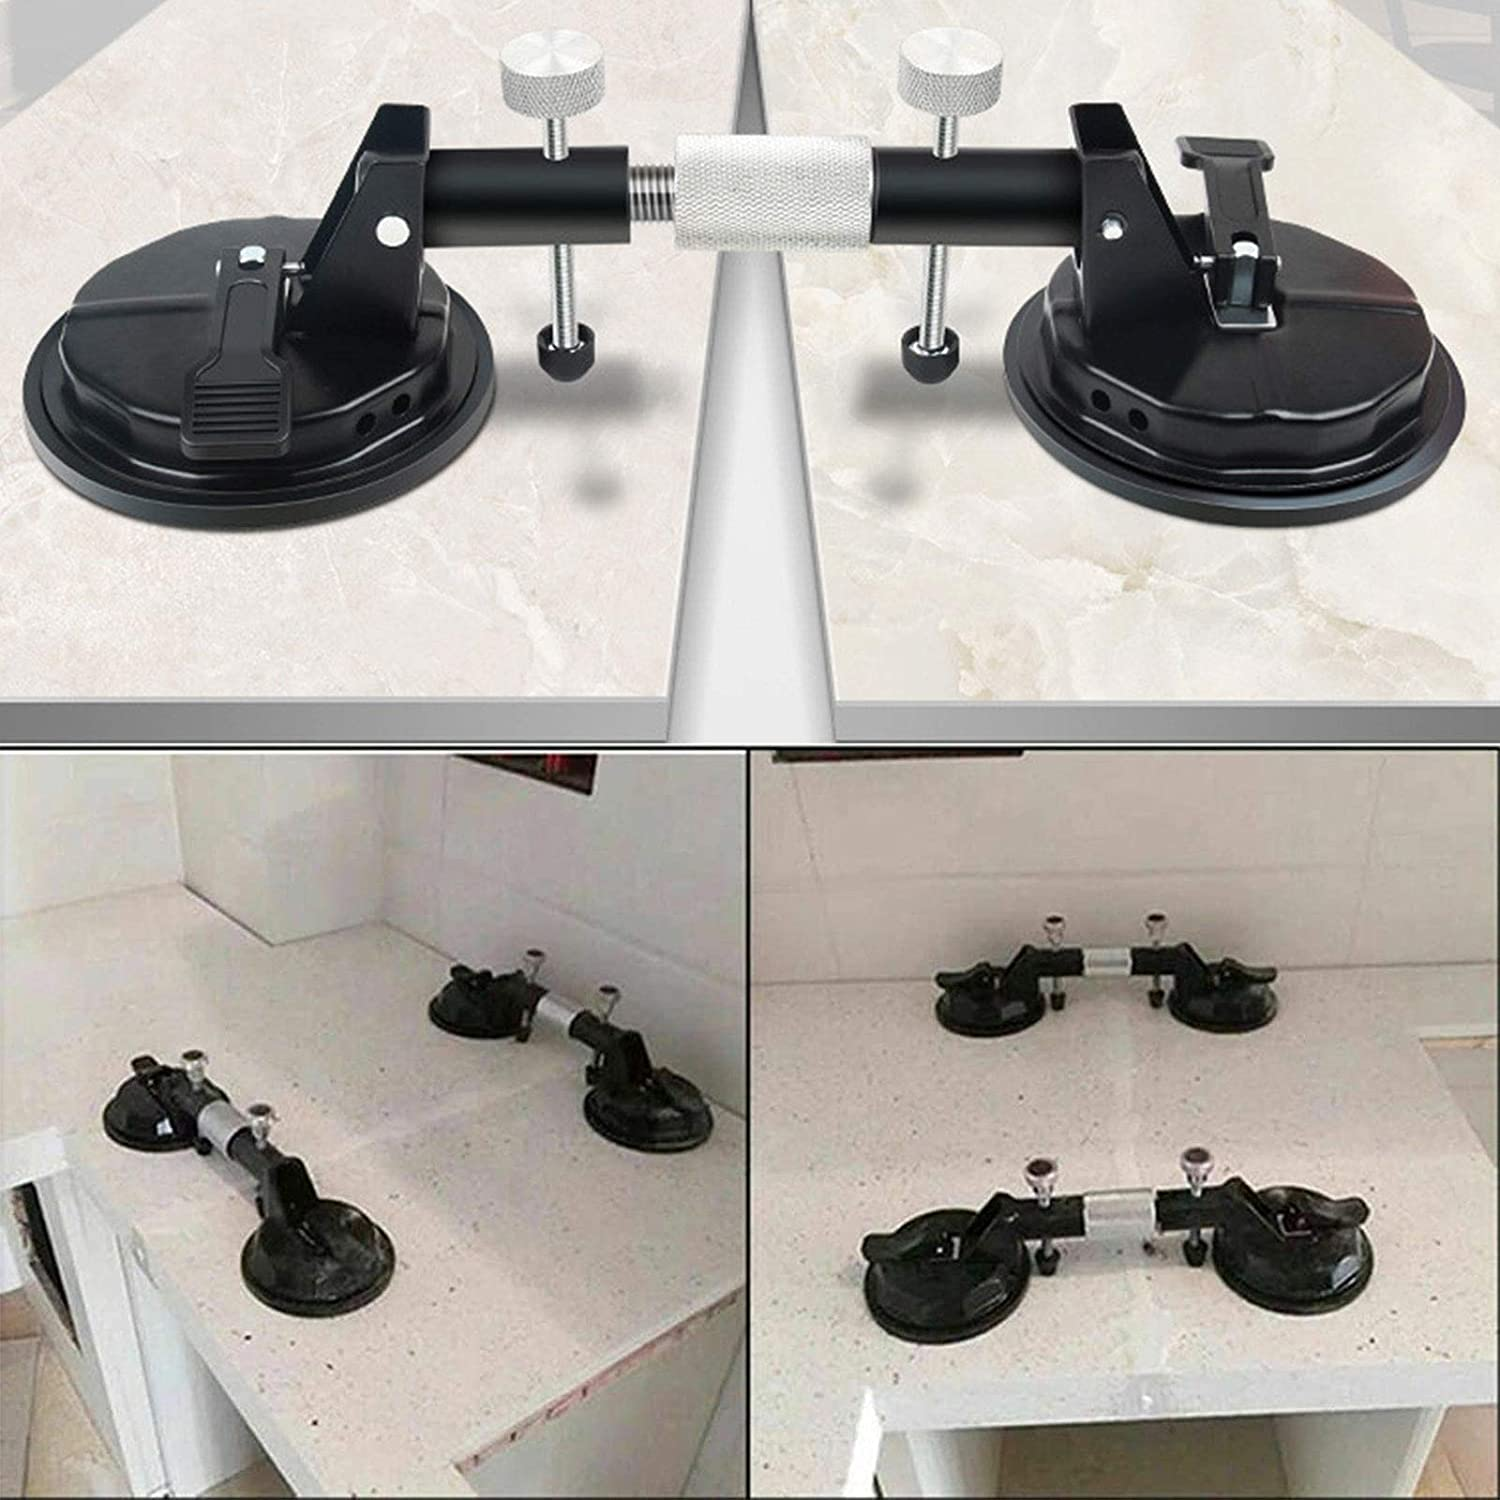 lzndeal Adjustable Suction Cup Stone Seam Setter for Pulling and Aligning Tiles Flat Surfaces